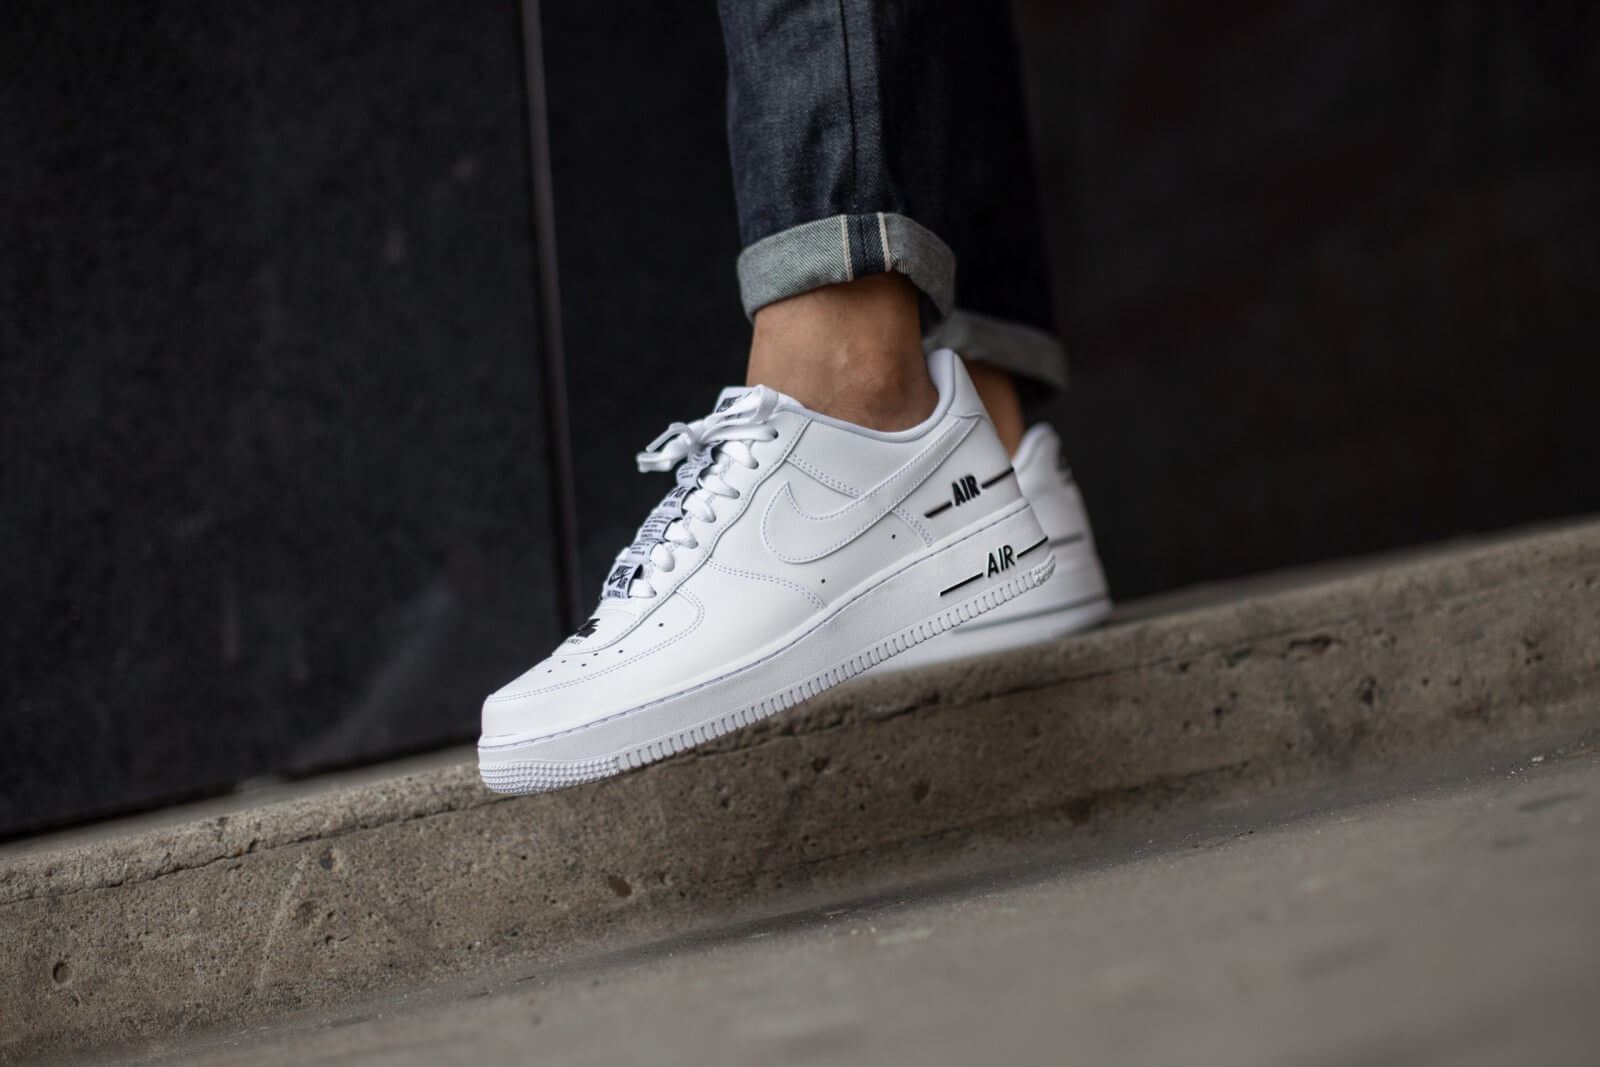 Nike Air Force 1 '07 LV8 3 White/White-Black